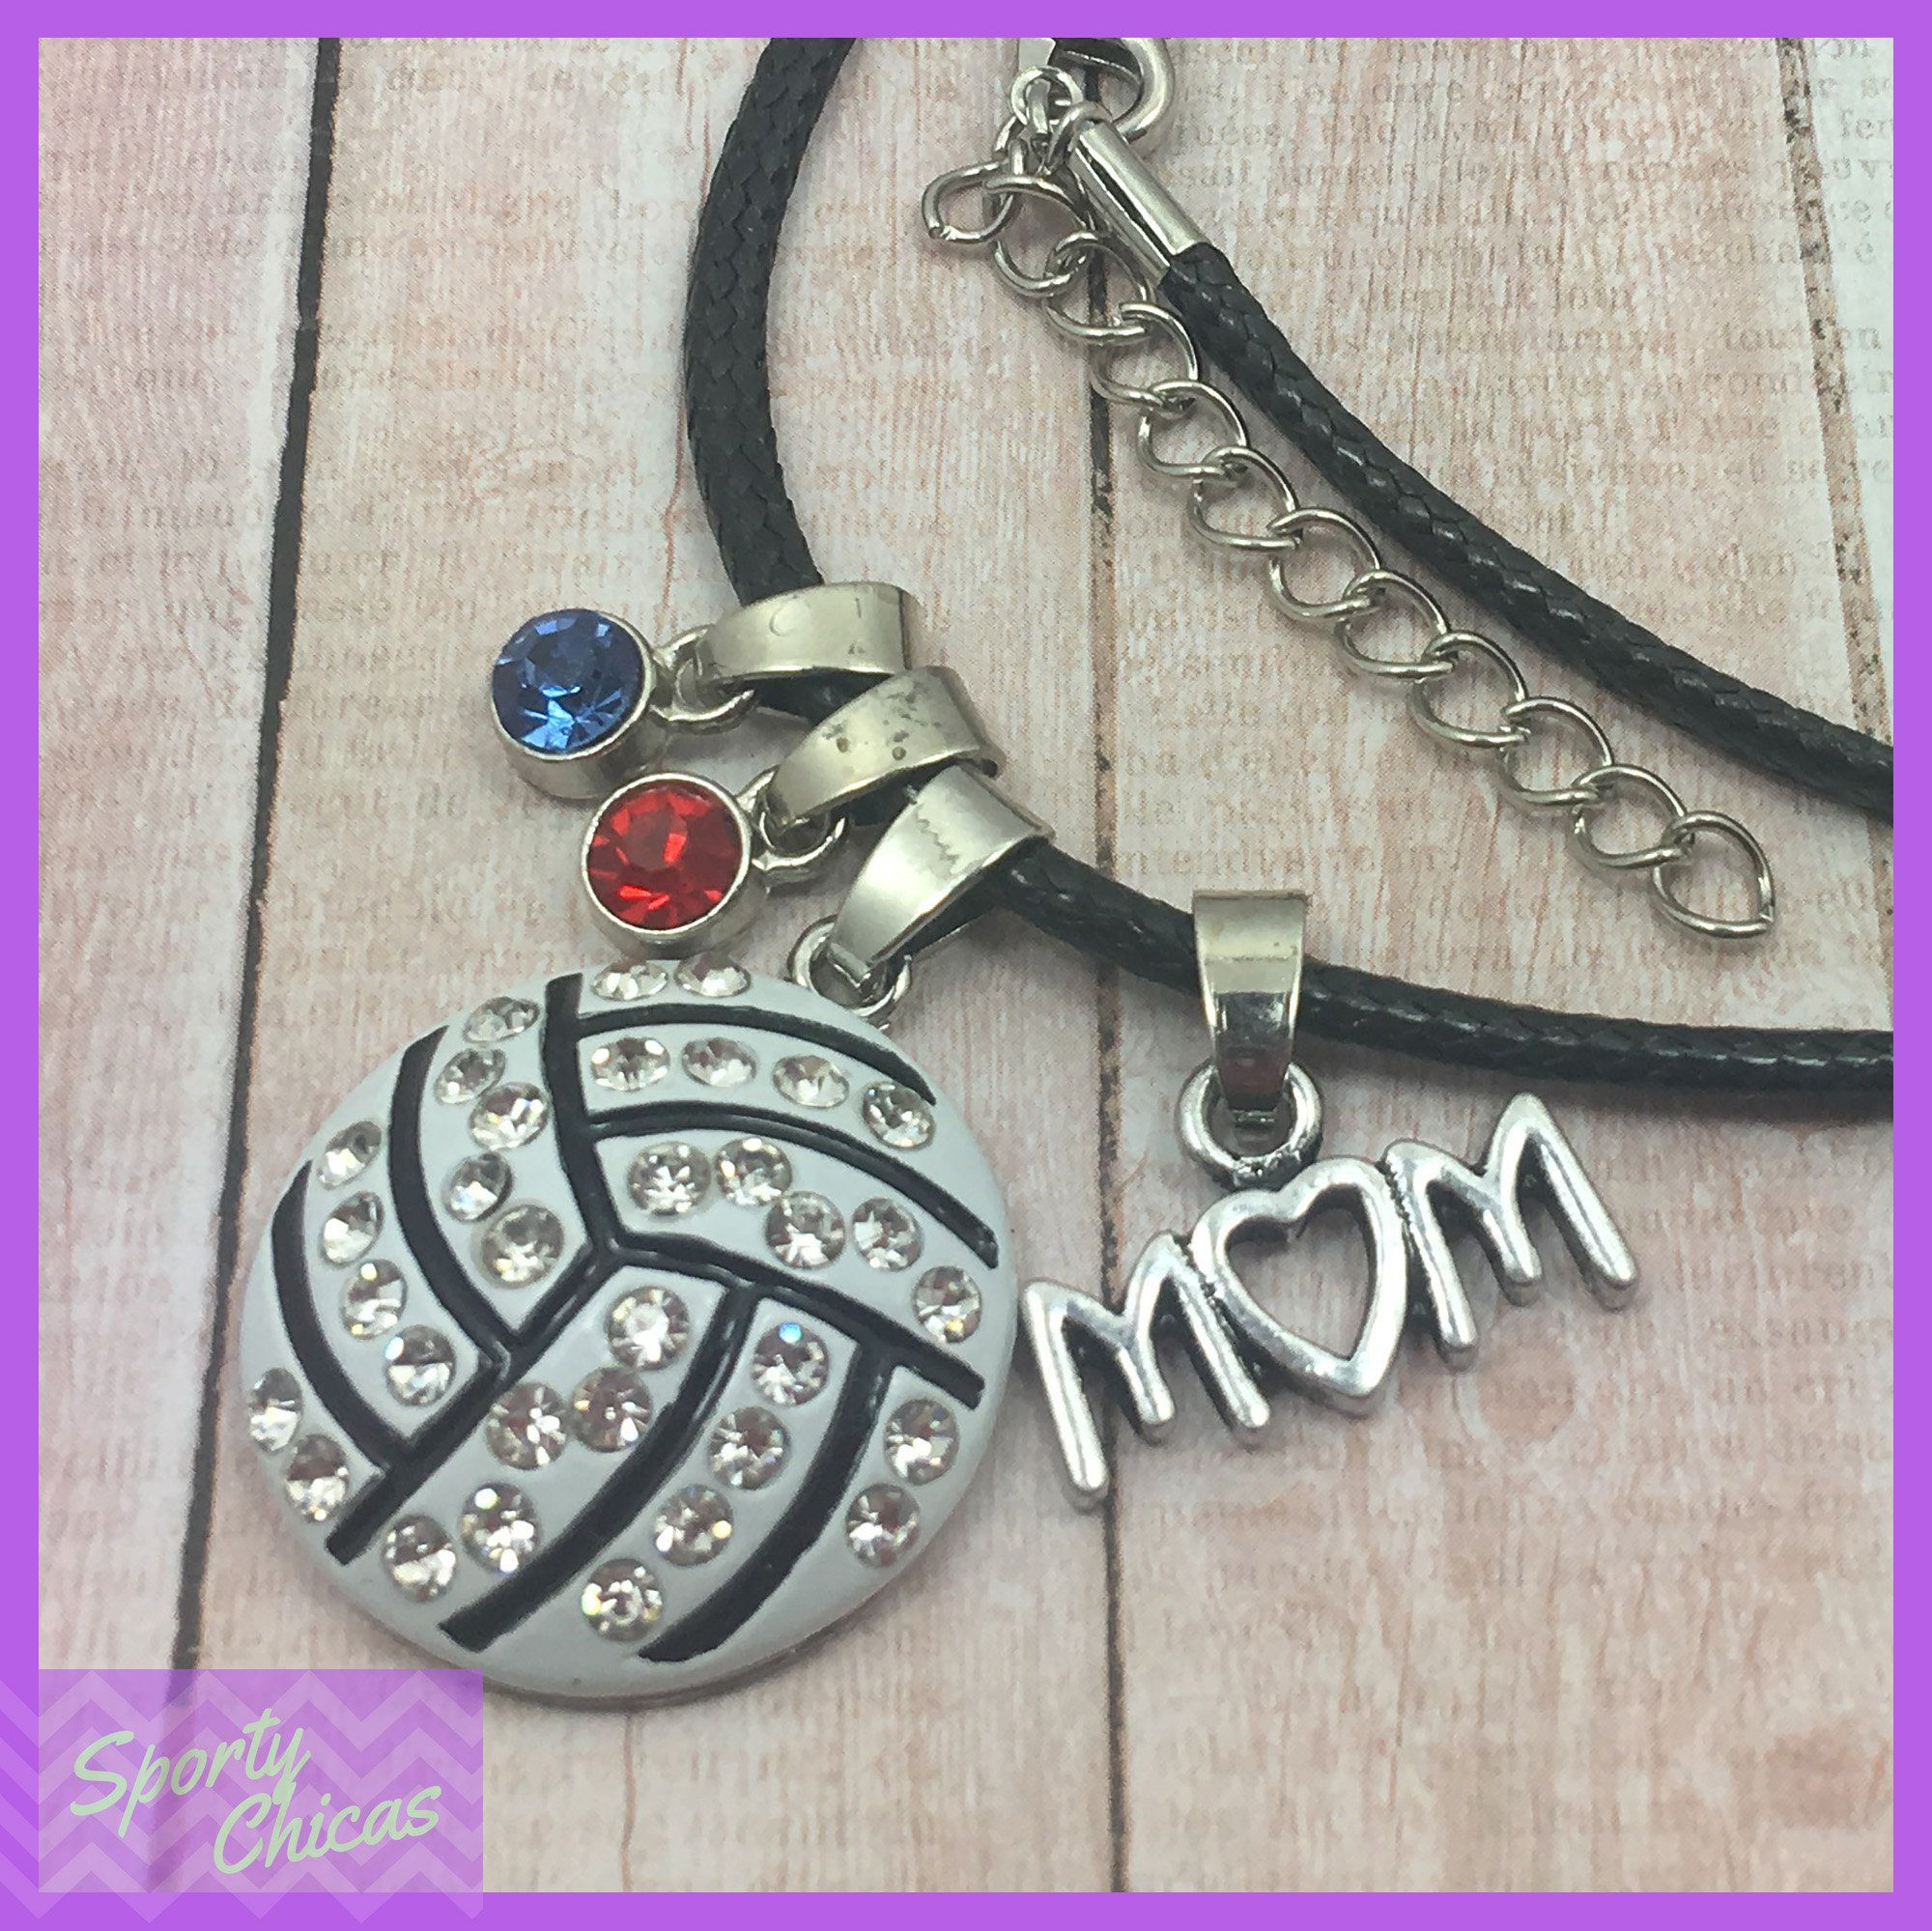 Volleyball Mom Personalized Volleyball Gift Team Mom Gift Birthstone Necklace Volleyball Necklace Mother S Day Gift End Of Season Team Mom Gifts Personalized Mom Volleyball Gifts